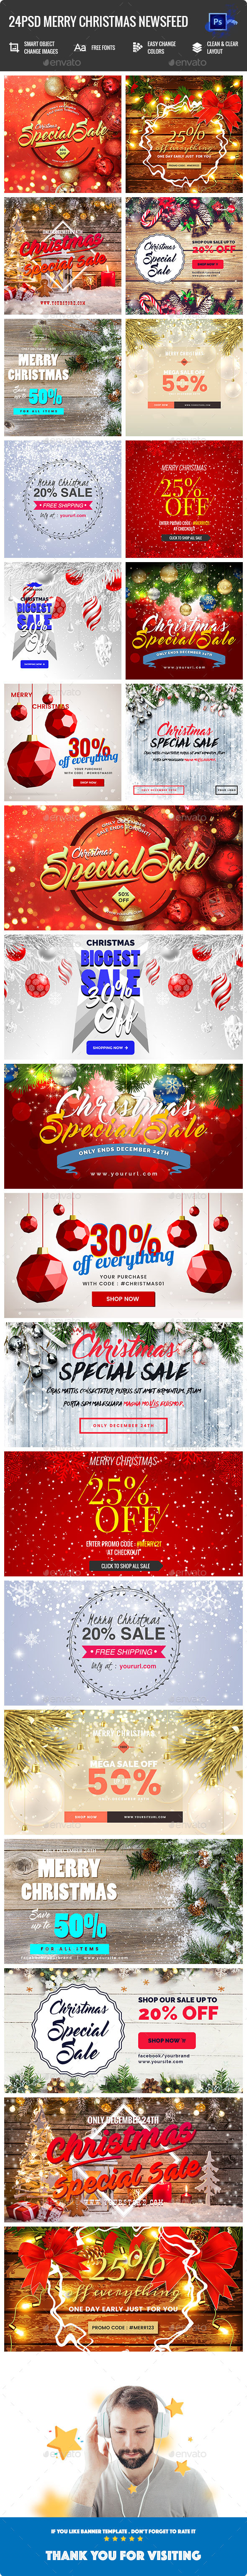 Merry Christmas NewsFeed - 24PSD - Banners & Ads Web Elements